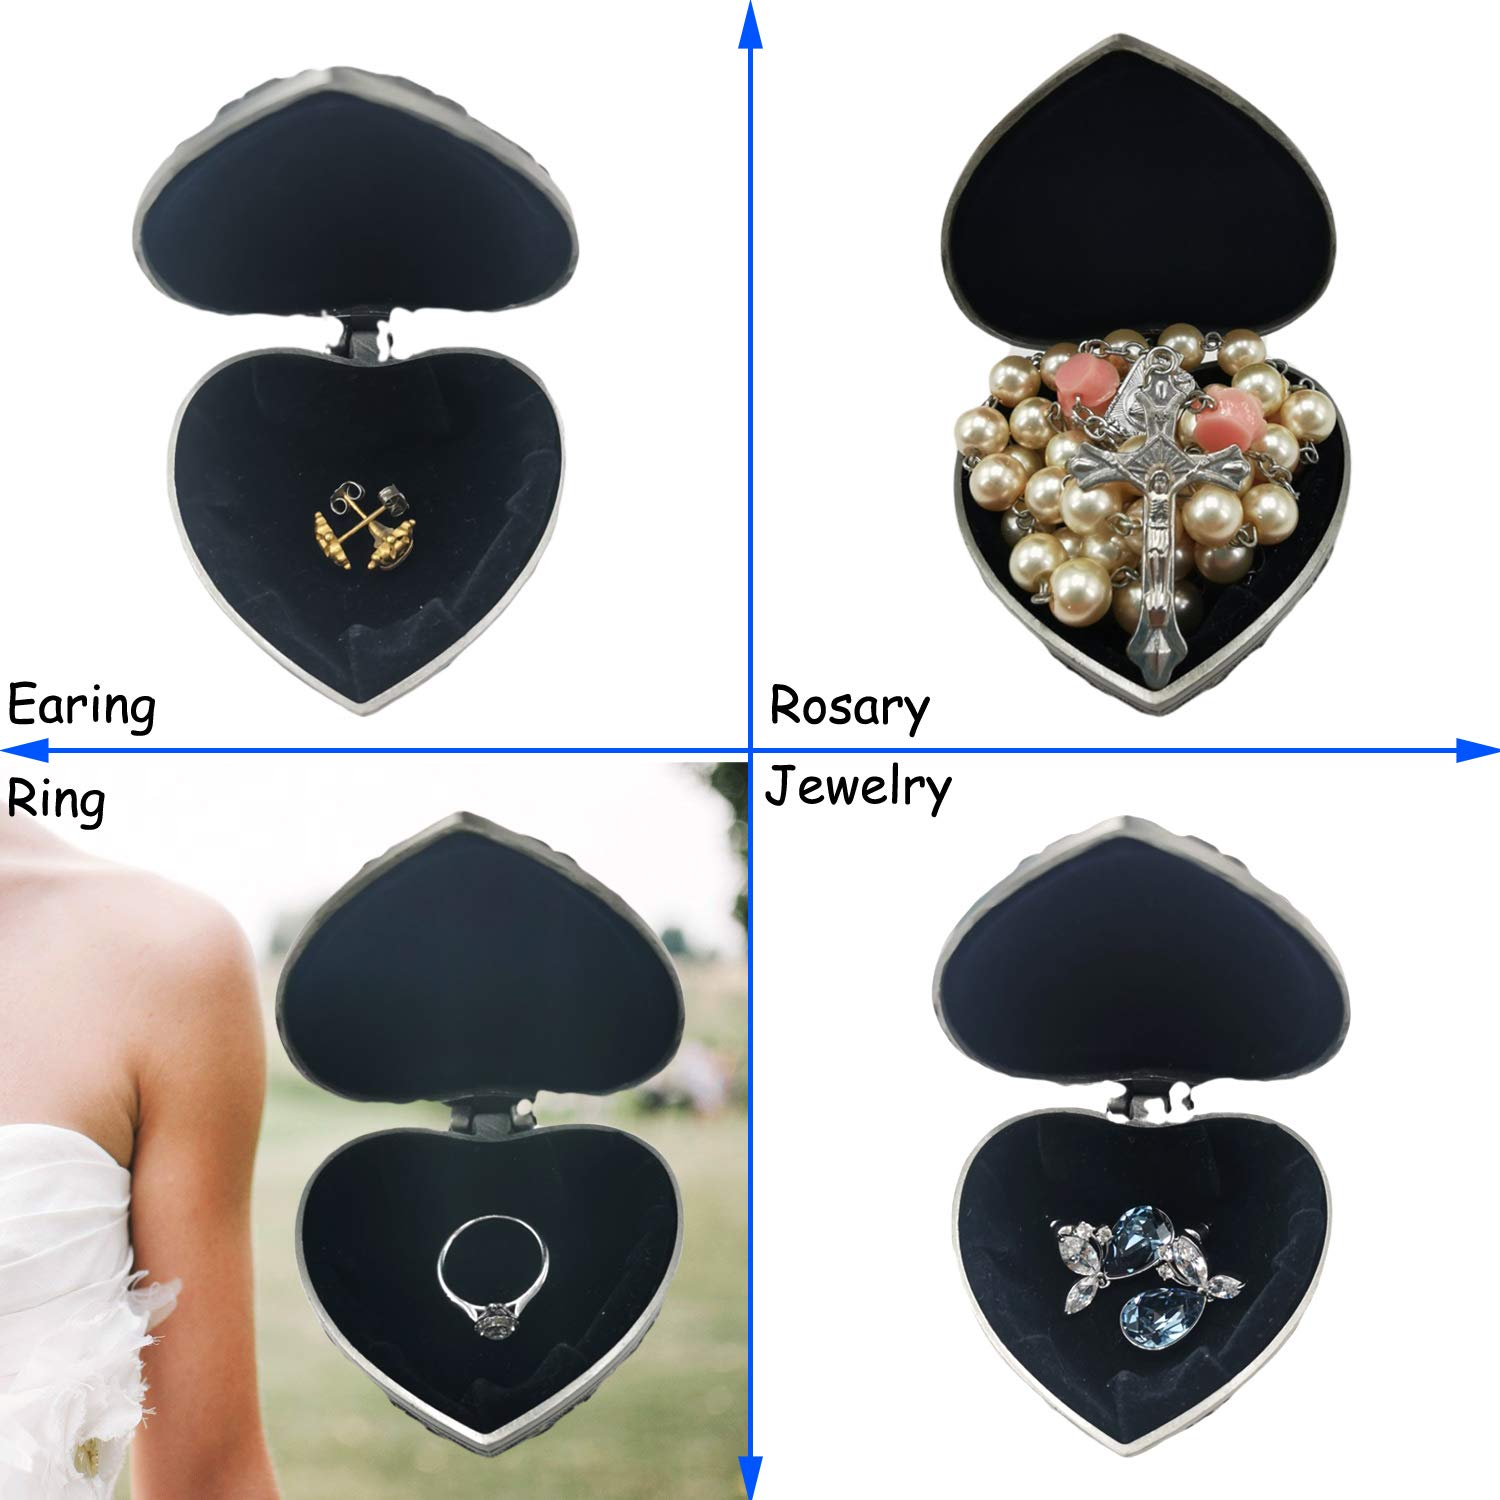 Antique Rosary /& Trinket Keepsake Gift Boxes in Heart Shape Small Jewelry Box Gifts for Her Vintage Earring /& Ring Gift Box